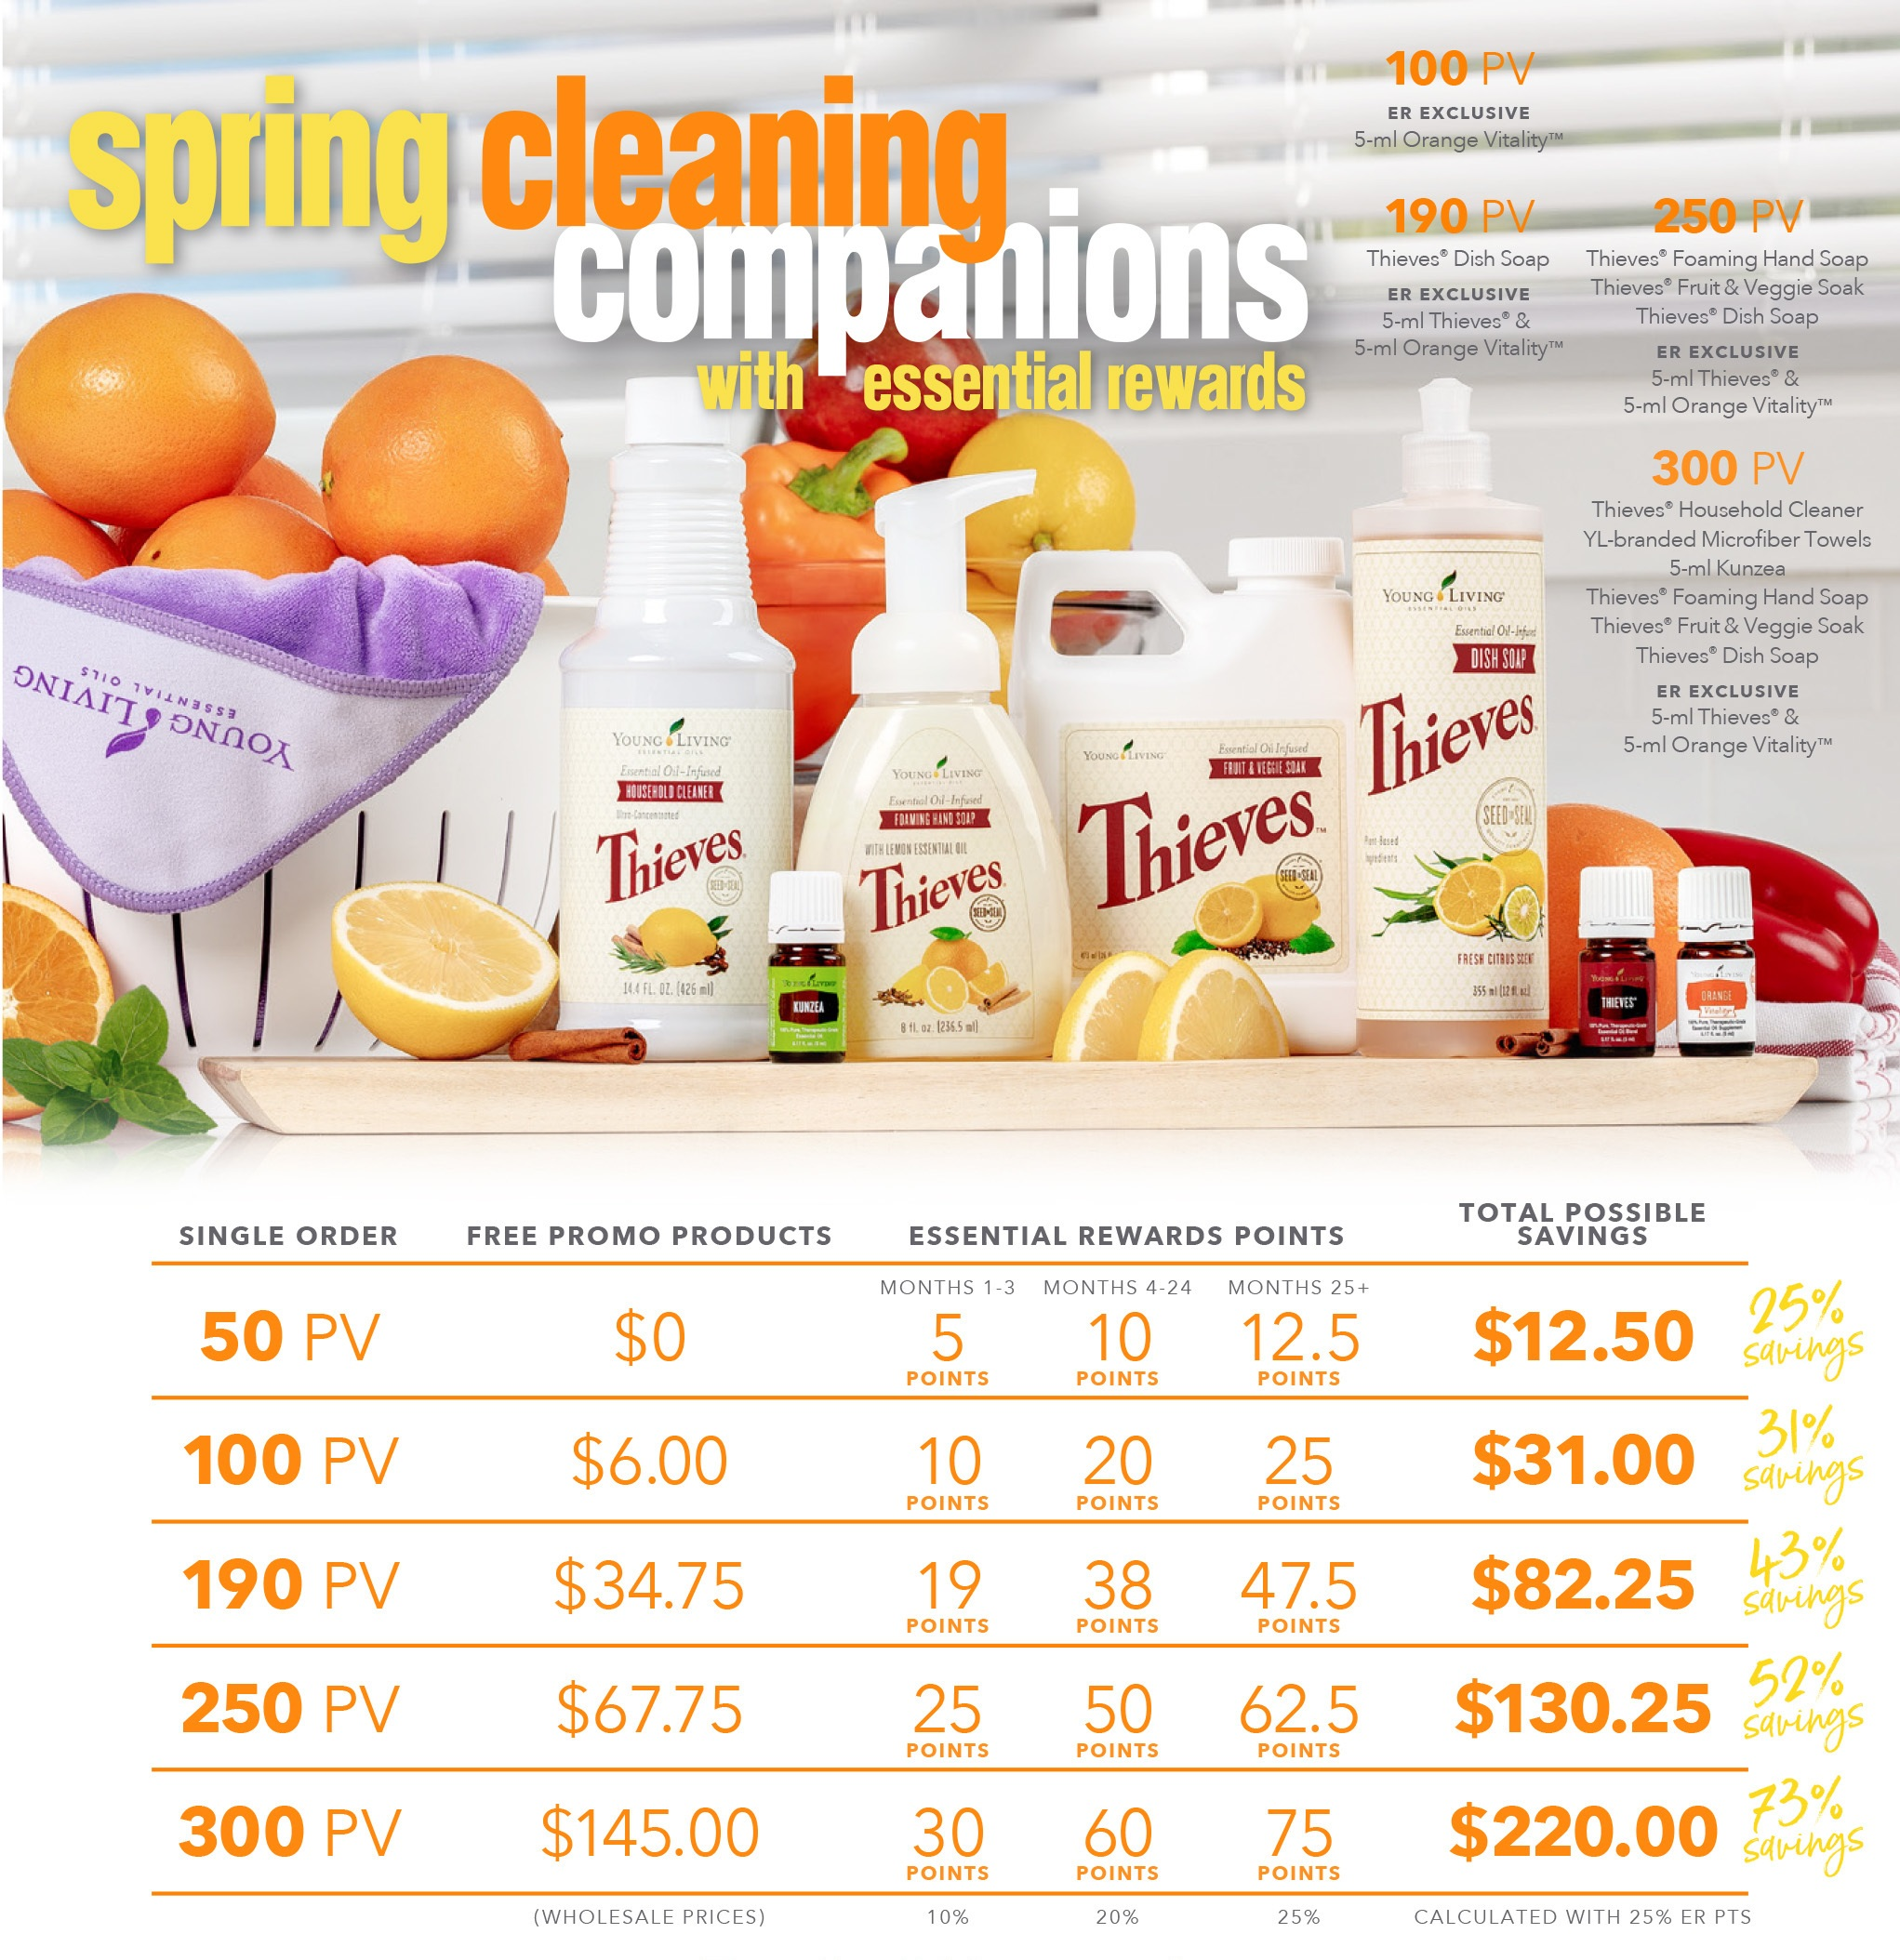 Celebrate spring with Young Living's March PV Promotion